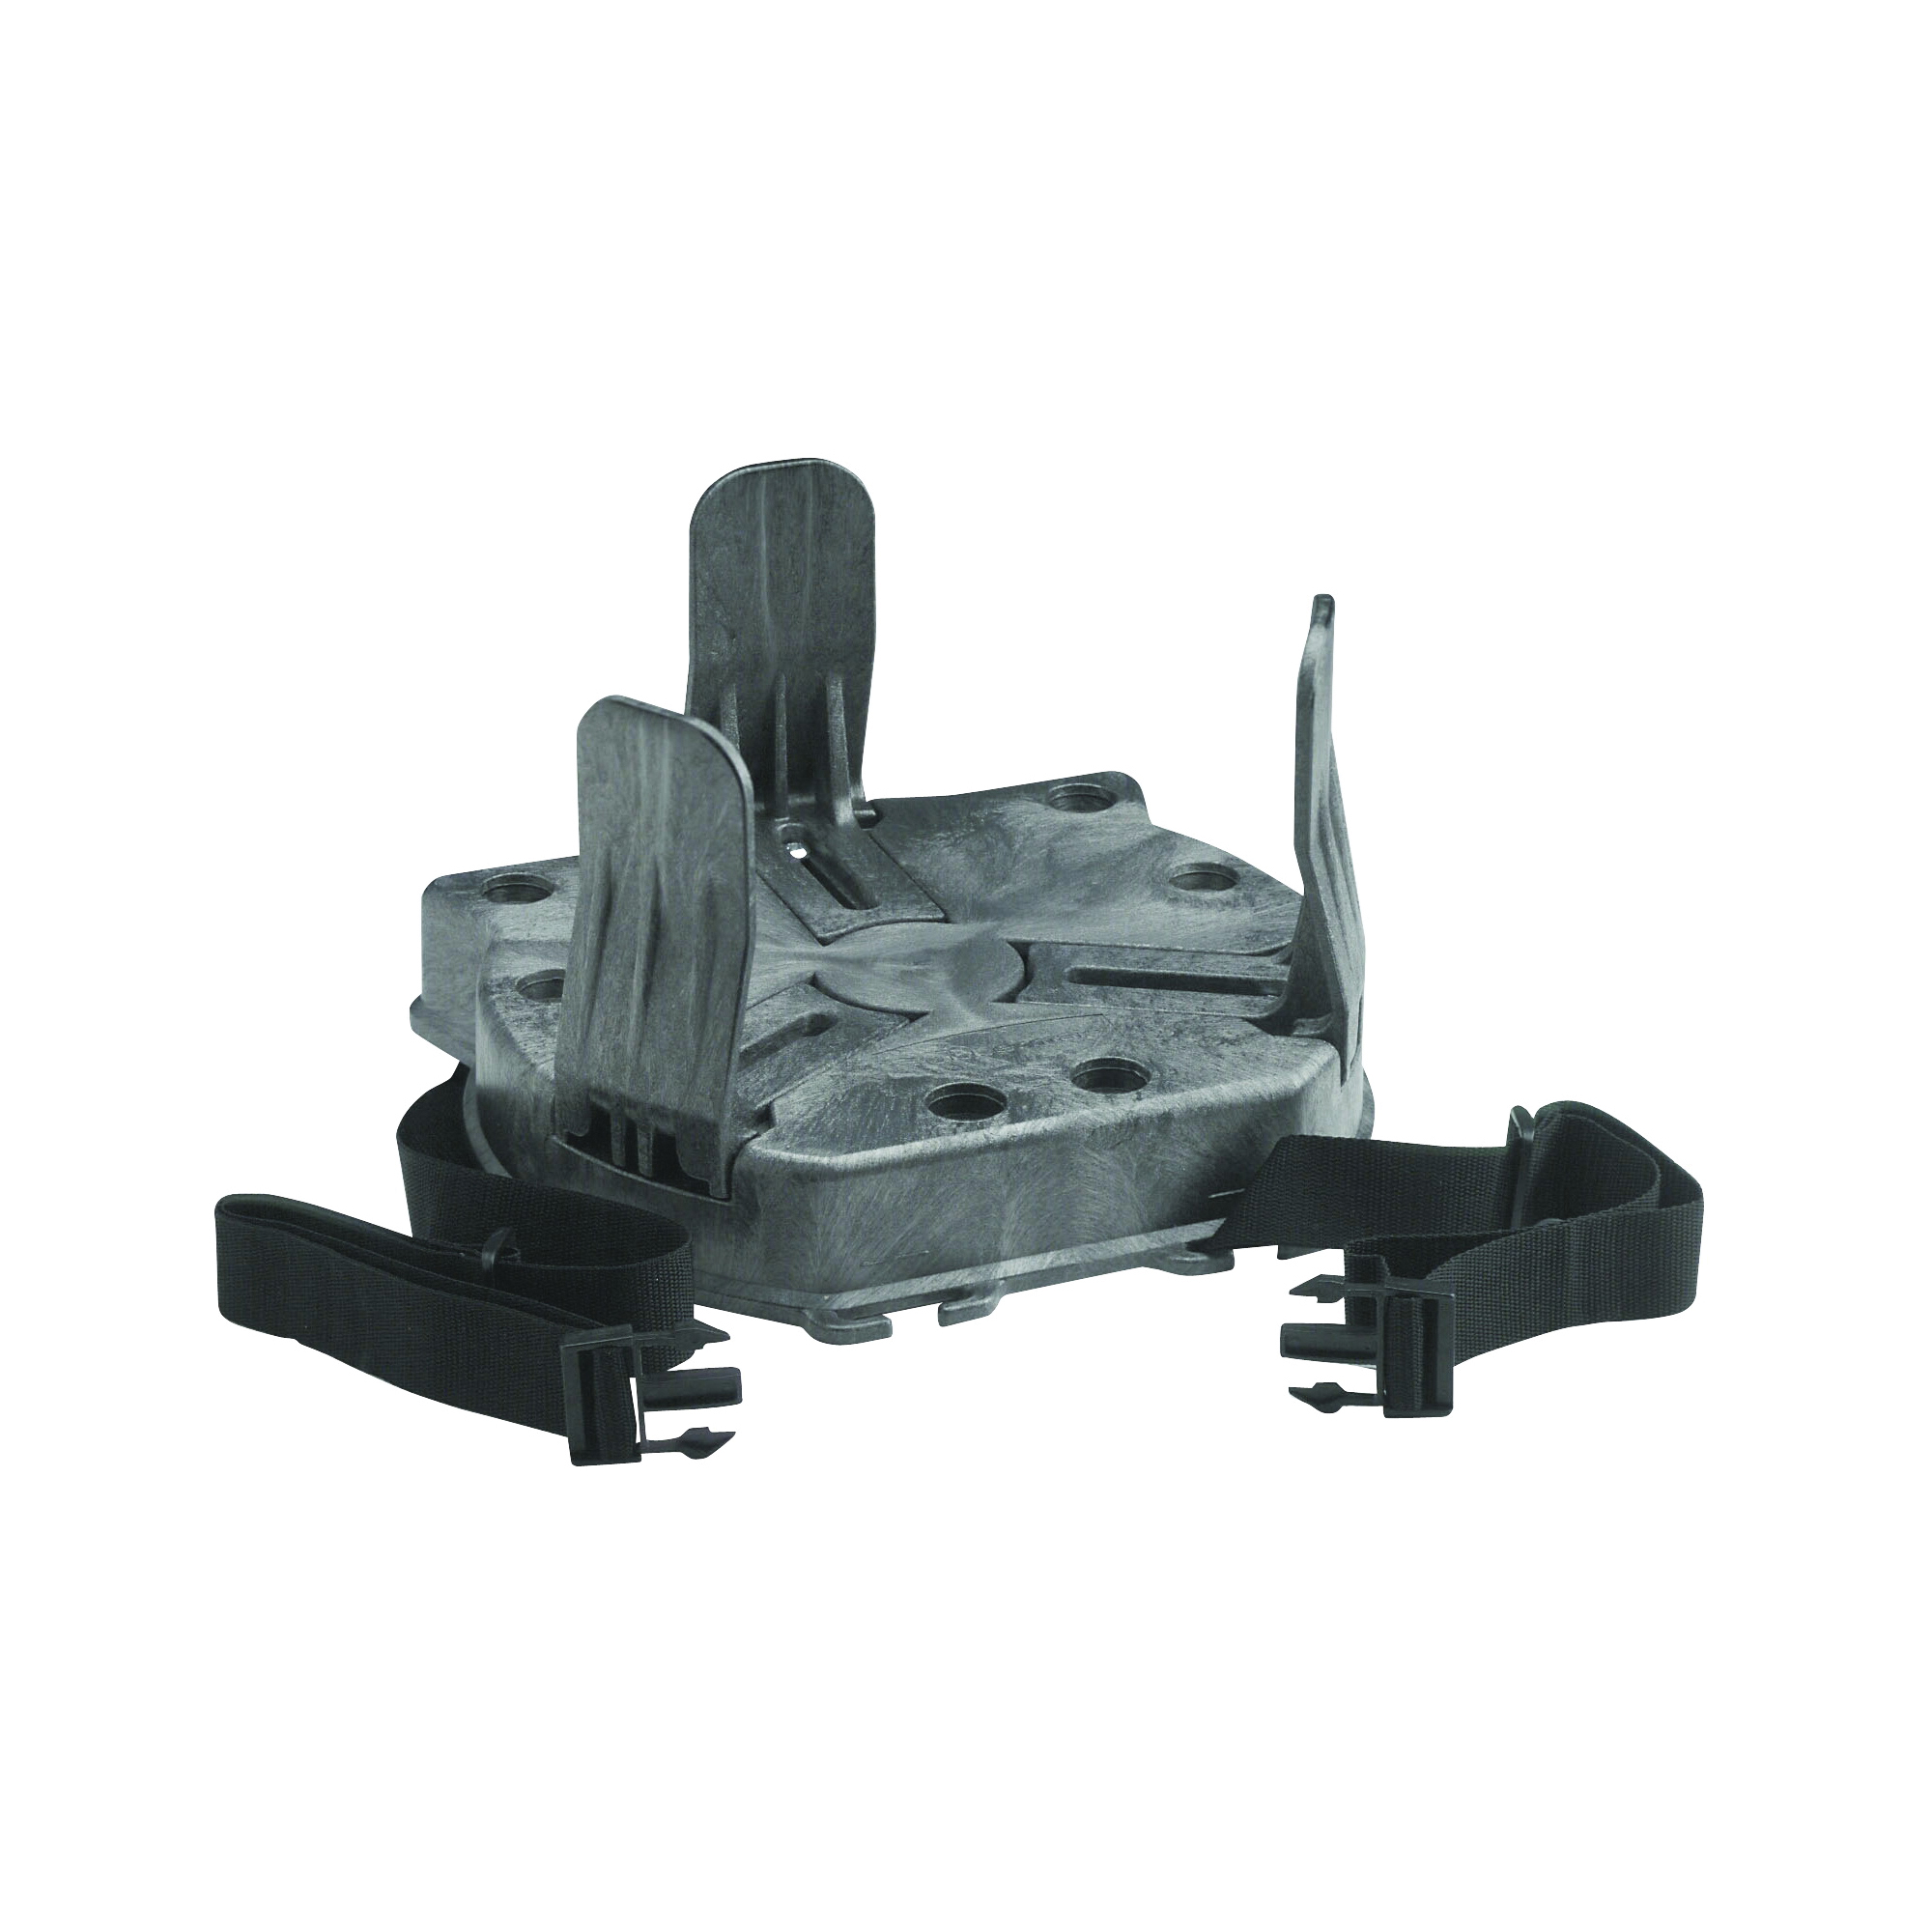 Picture of Rubbermaid 1640 Mount Bracket, Gray, For: Rubbermaid Water Coolers